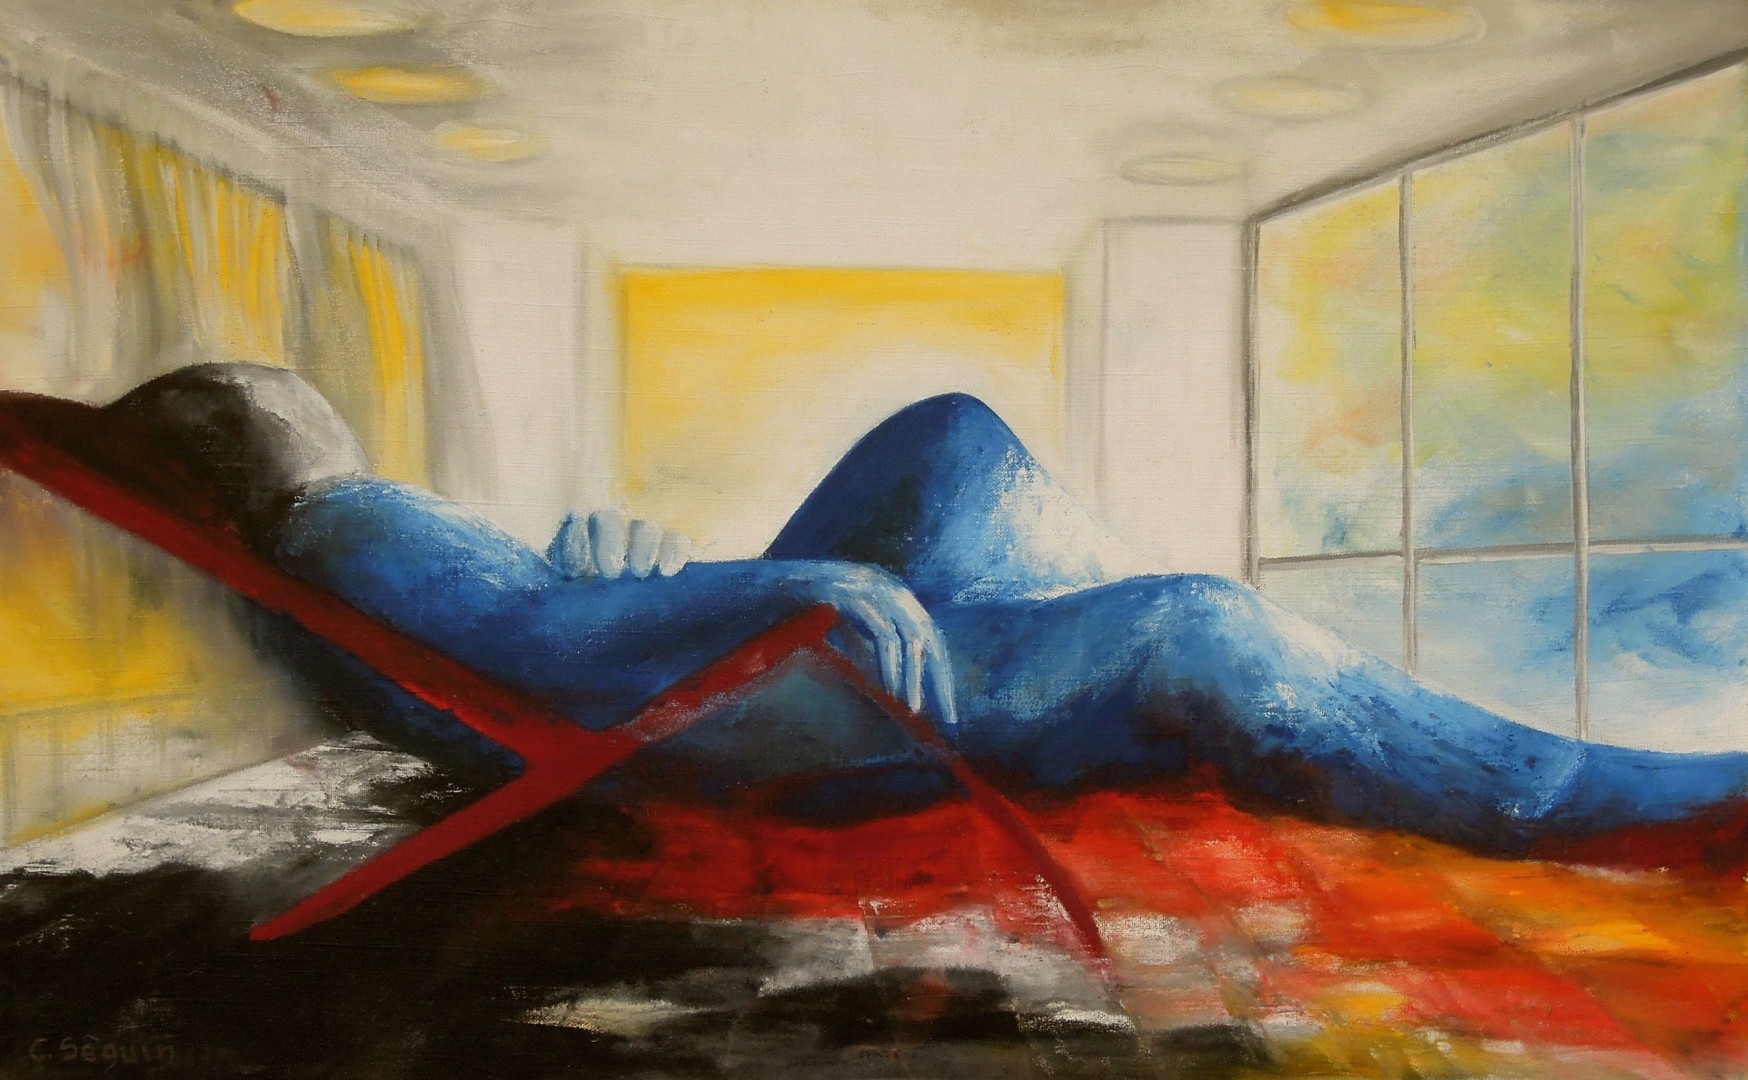 christiane seguin - chaise longue